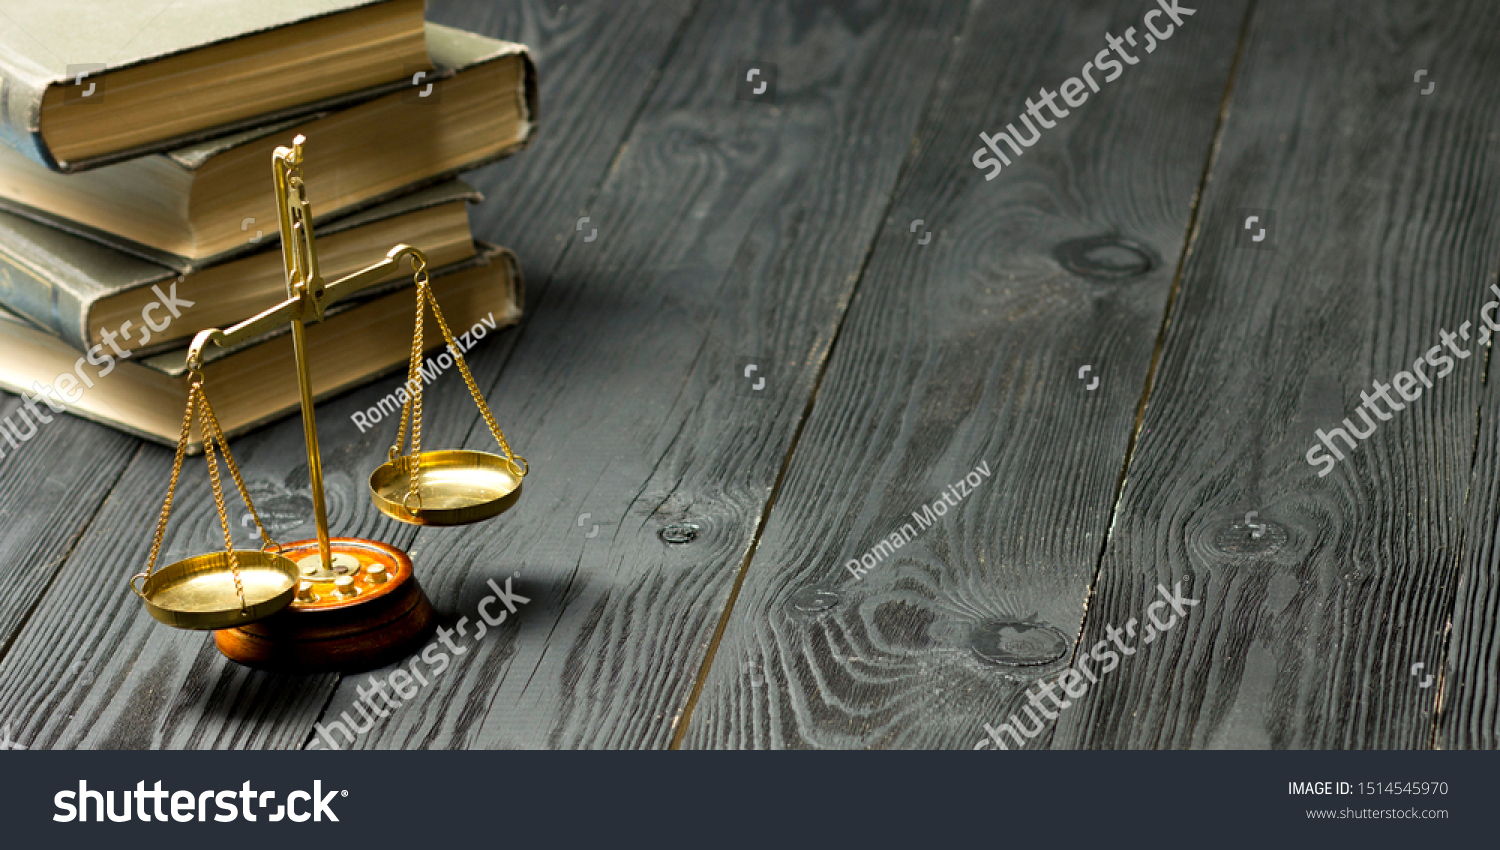 Law concept - Open law book with a wooden judges gavel on table in a courtroom or law enforcement office isolated on white background. Copy space for text. #1514545970